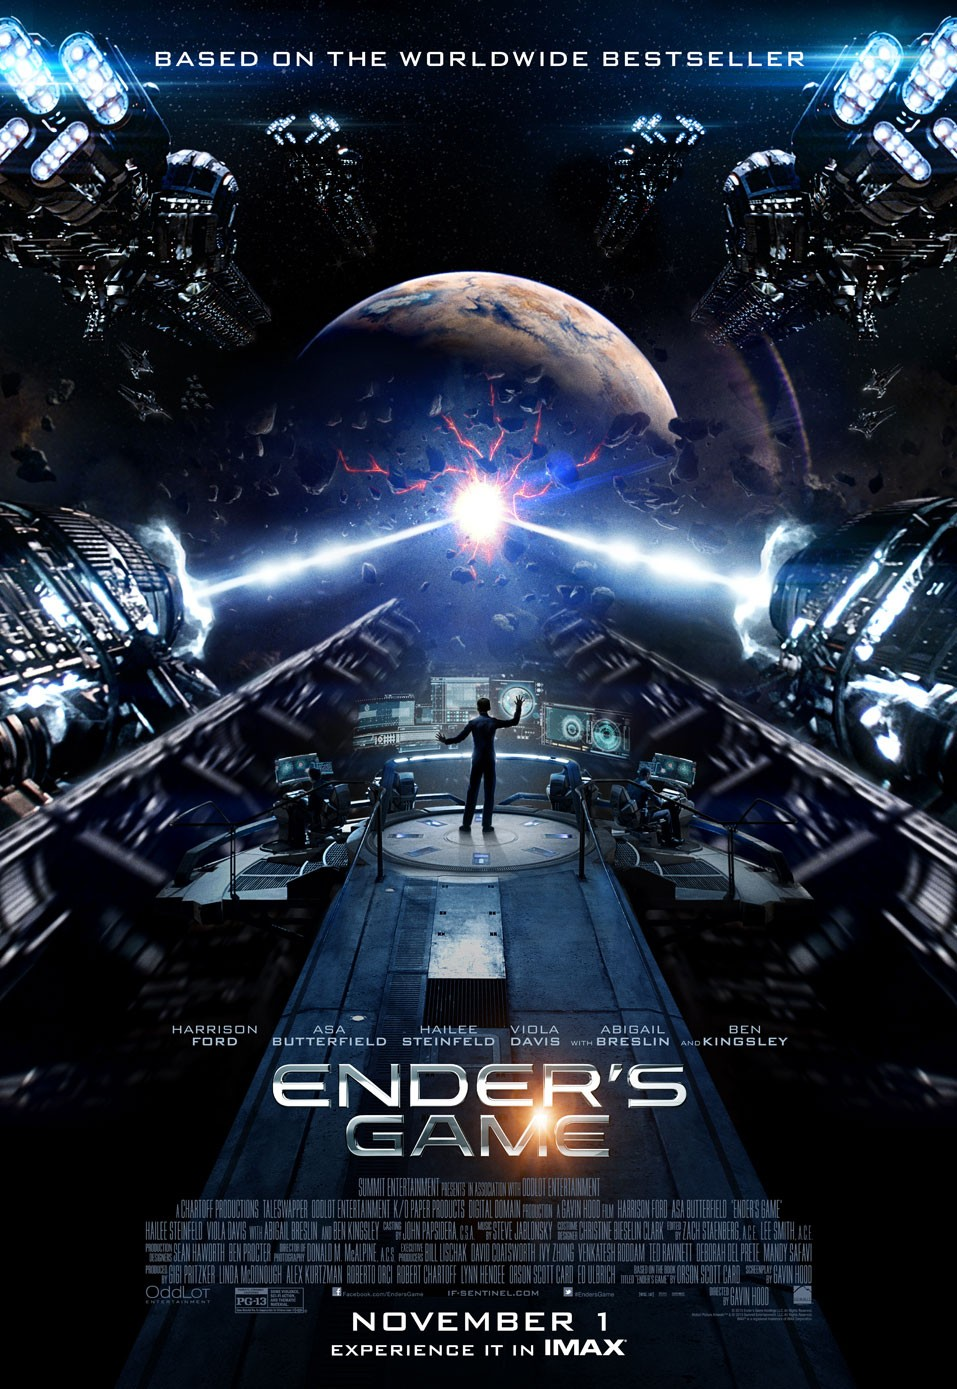 Ender's Game-Official Poster Banner PROMO IMAX-04OUTUBRO2013